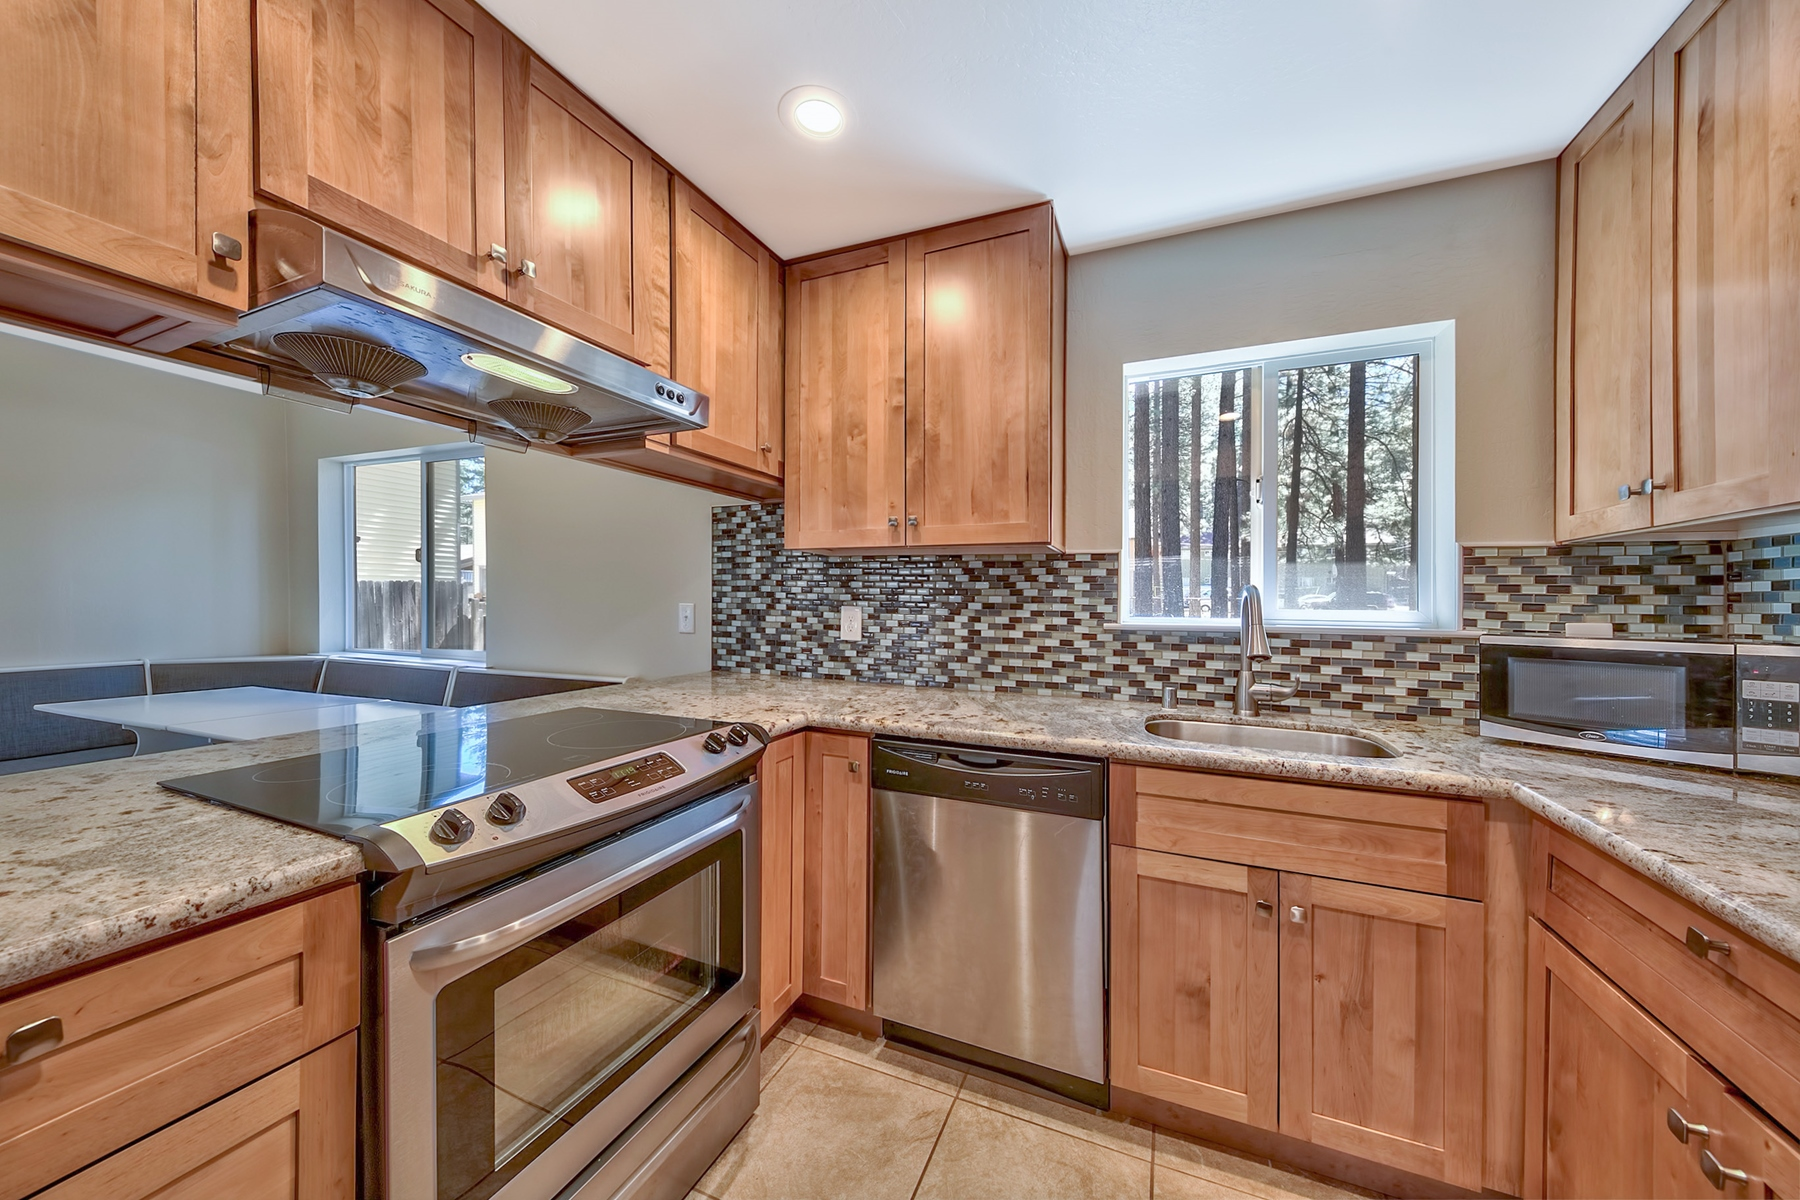 Additional photo for property listing at 3681 Primrose Road, South Lake Tahoe CA 96150 3681 Primrose Road 南太浩湖, 加利福尼亚州 96150 美国